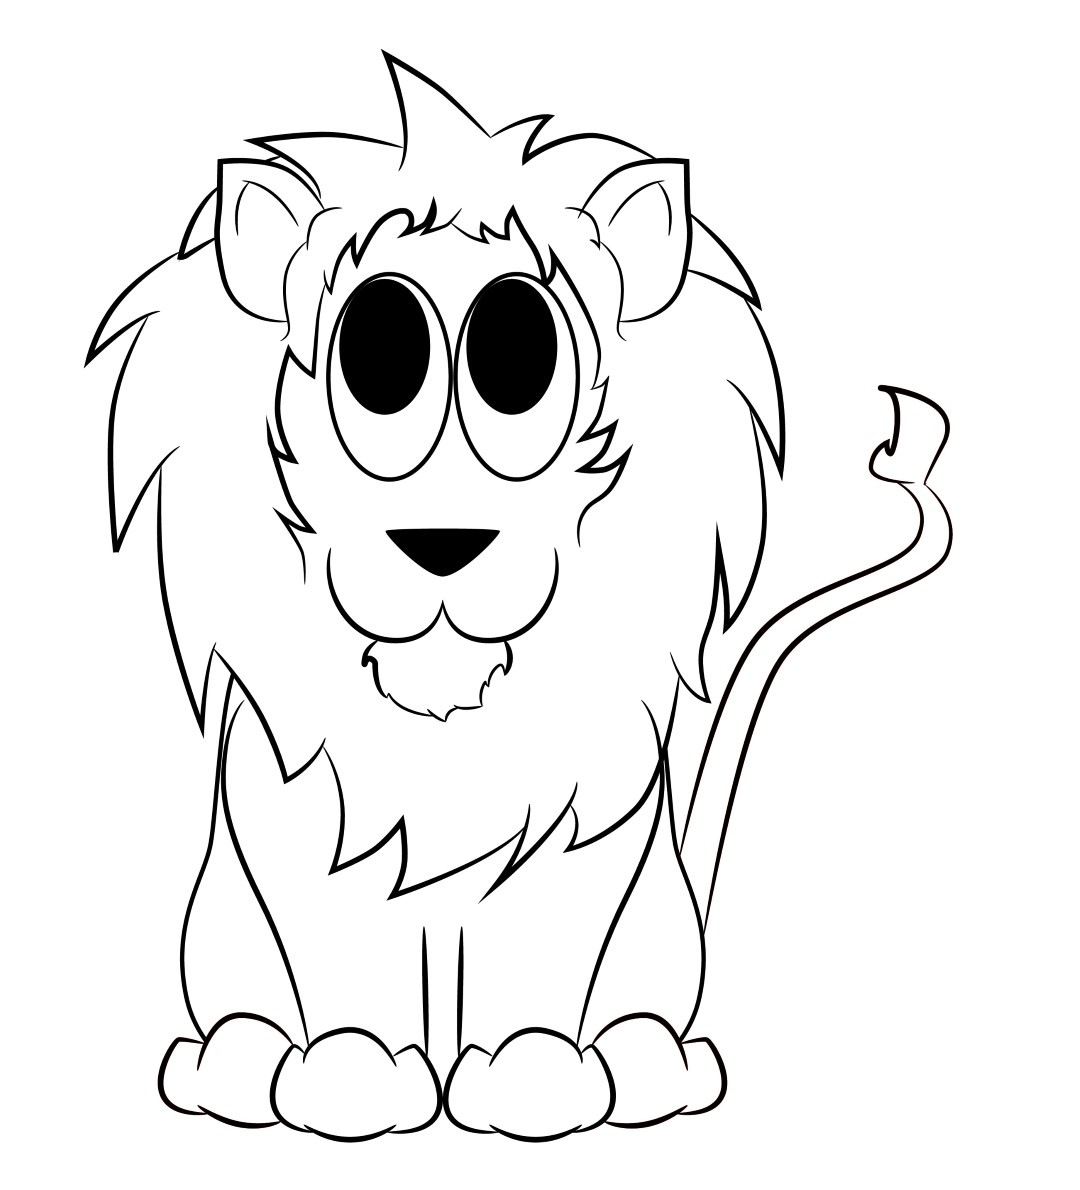 1080x1190 Pictures Drawings Of Cartoon Lions,